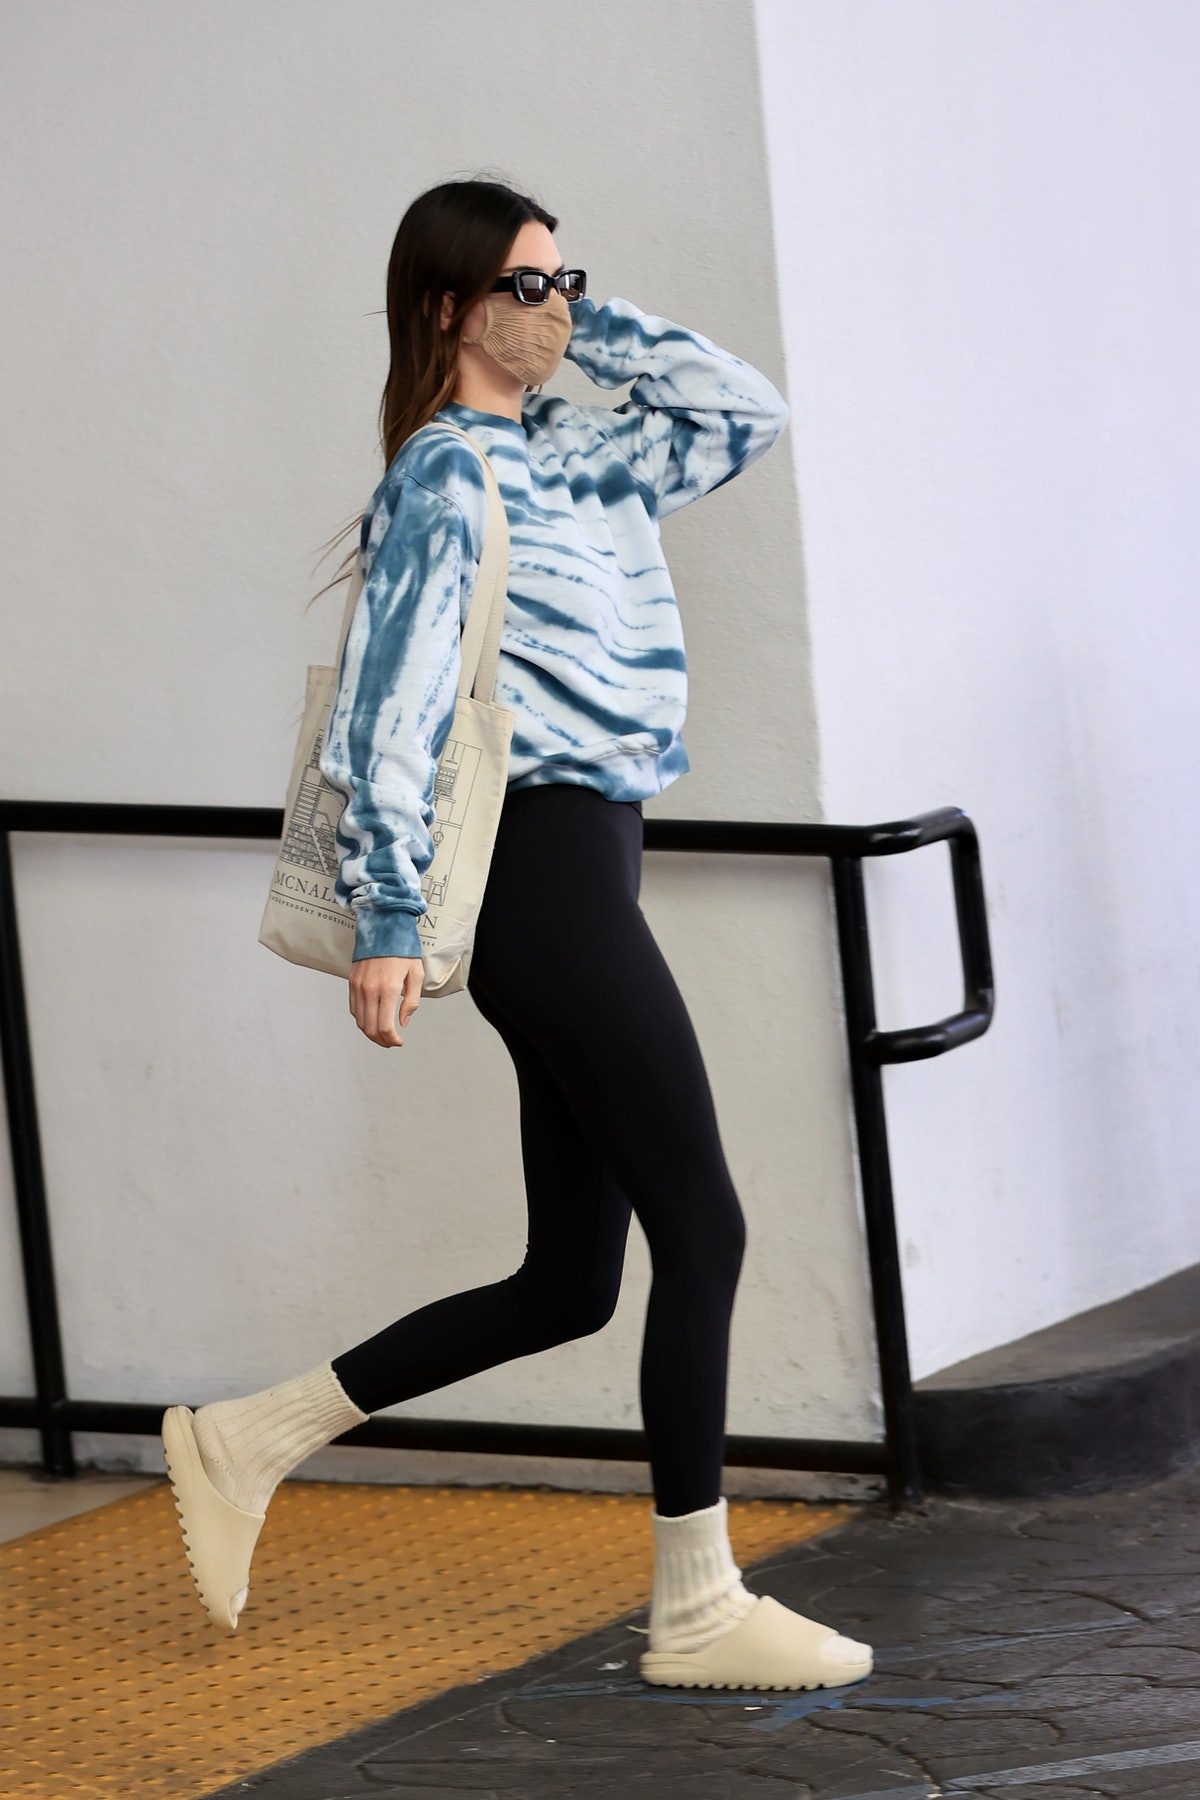 Kendall Jenner is seen on February 3, 2021 in Los Angeles, California.